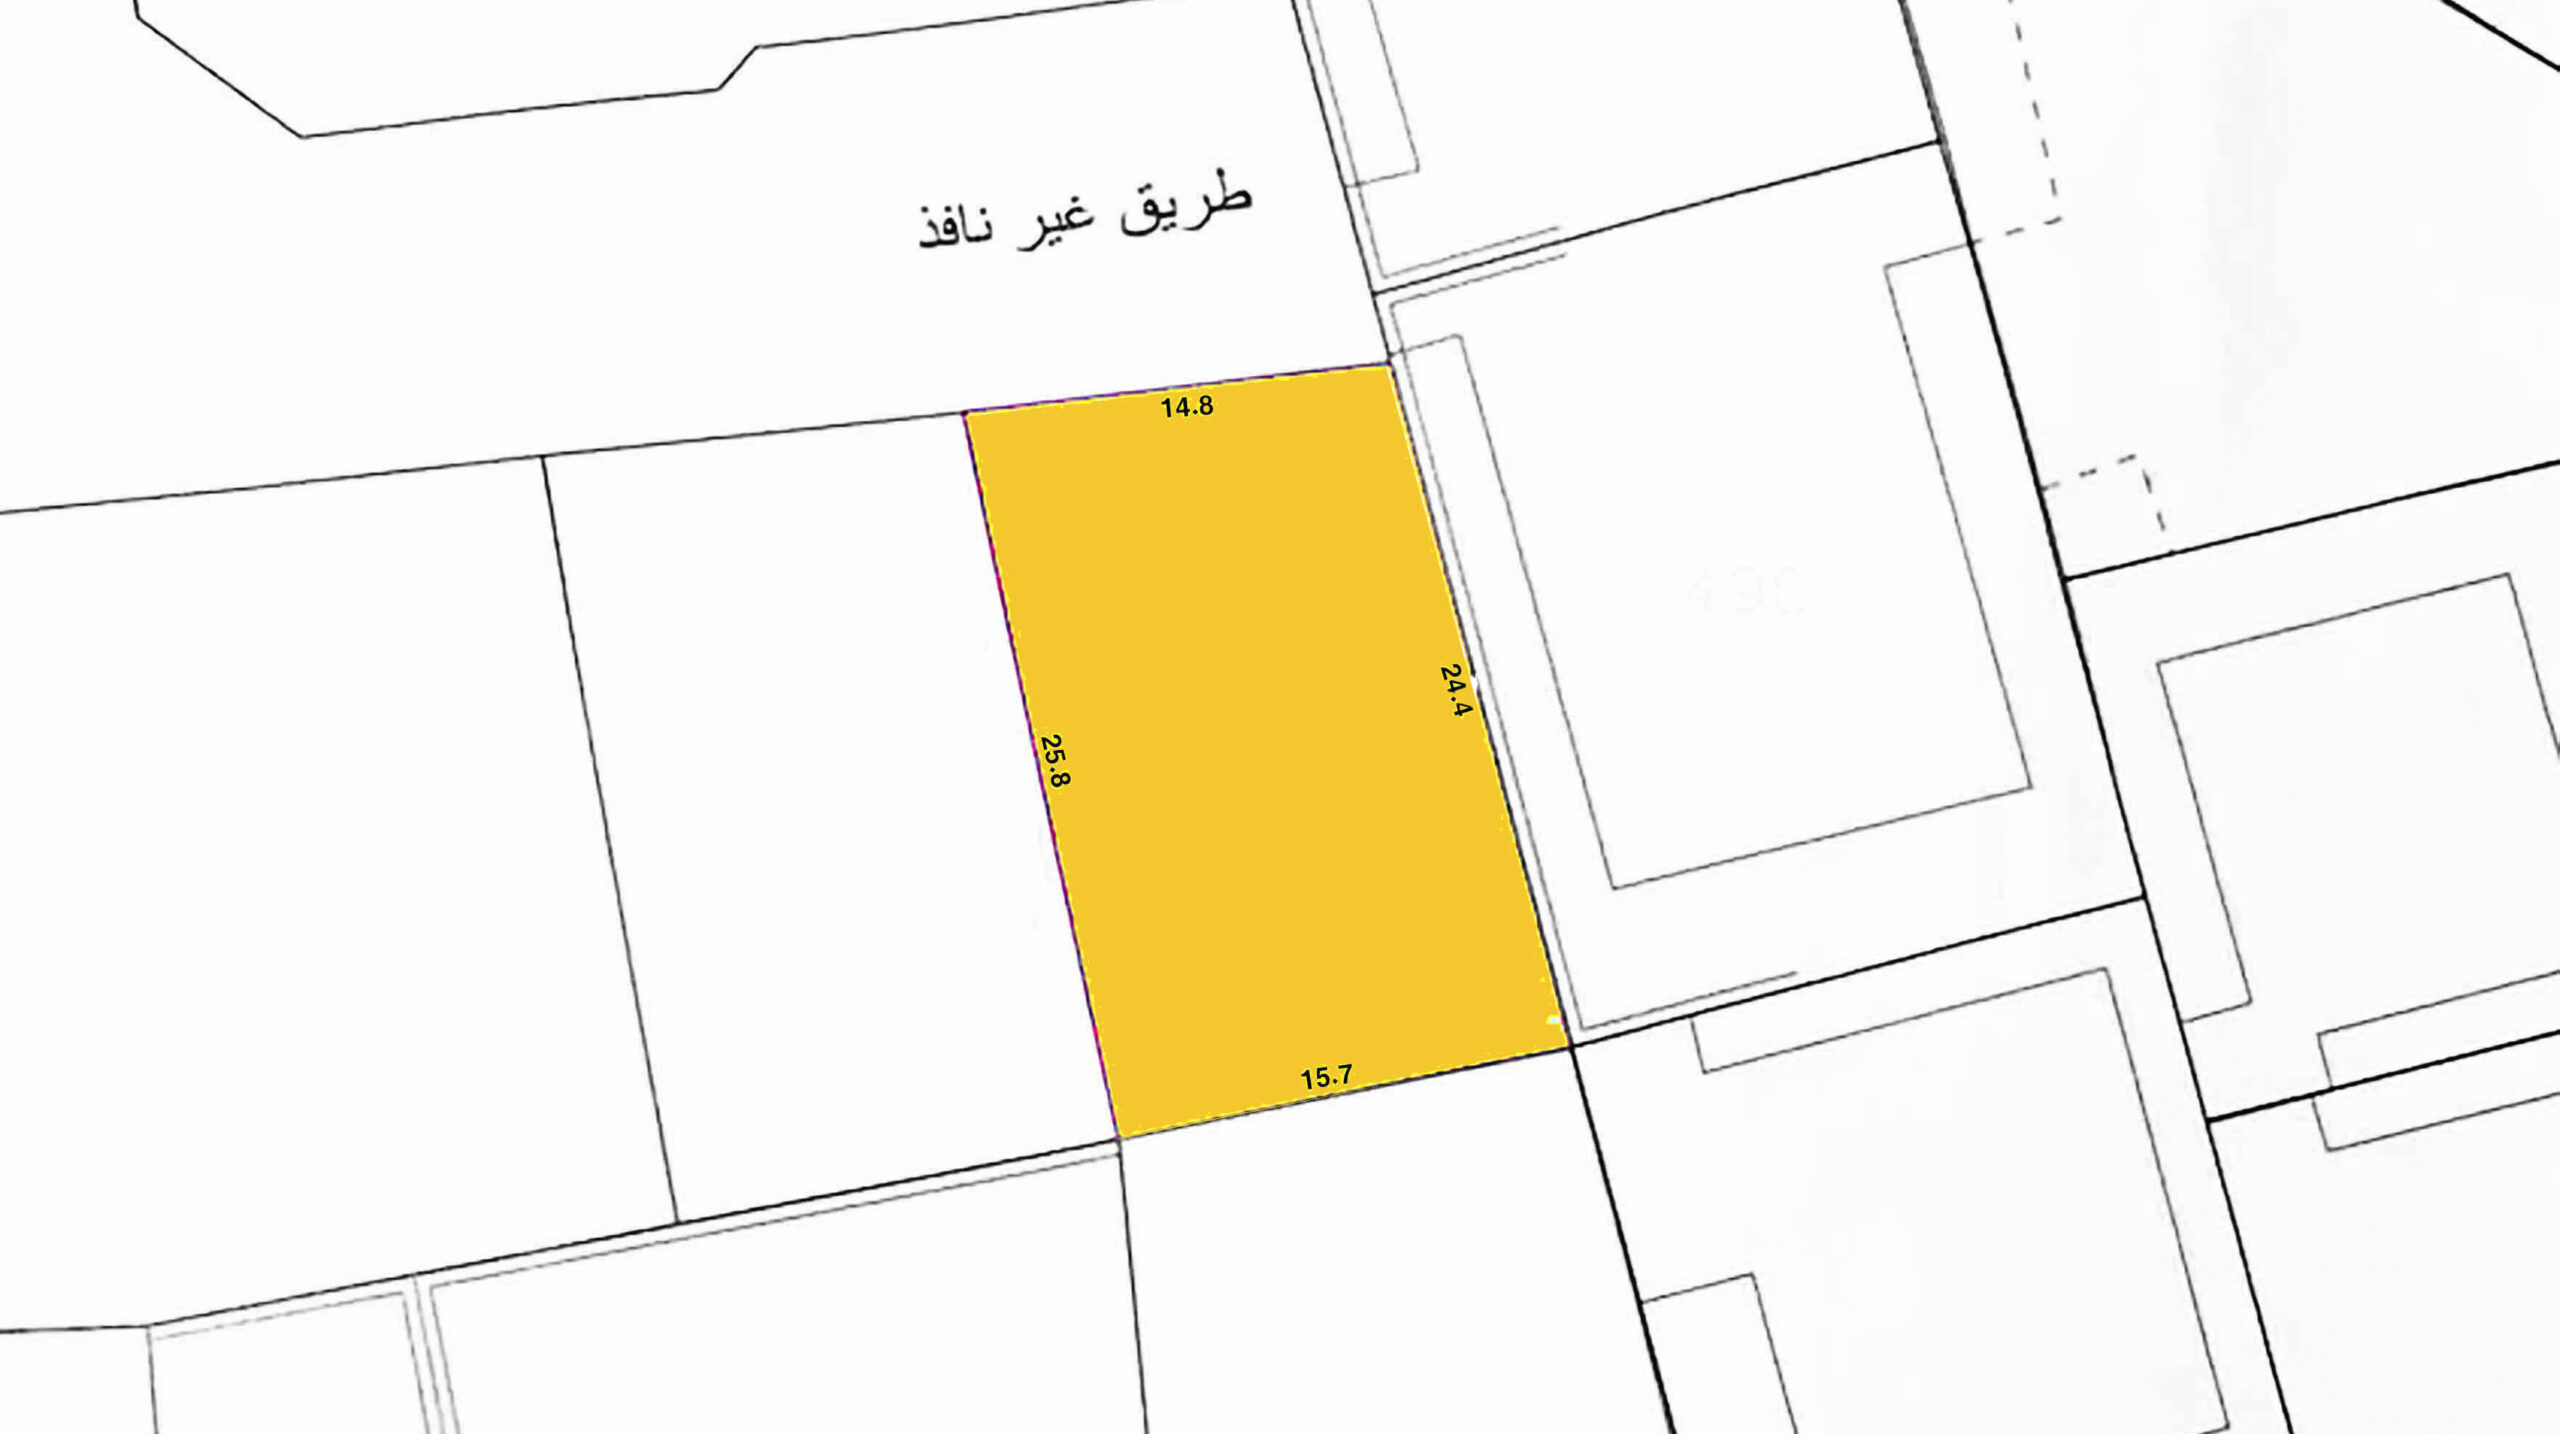 Land for sale RB located in Tubli